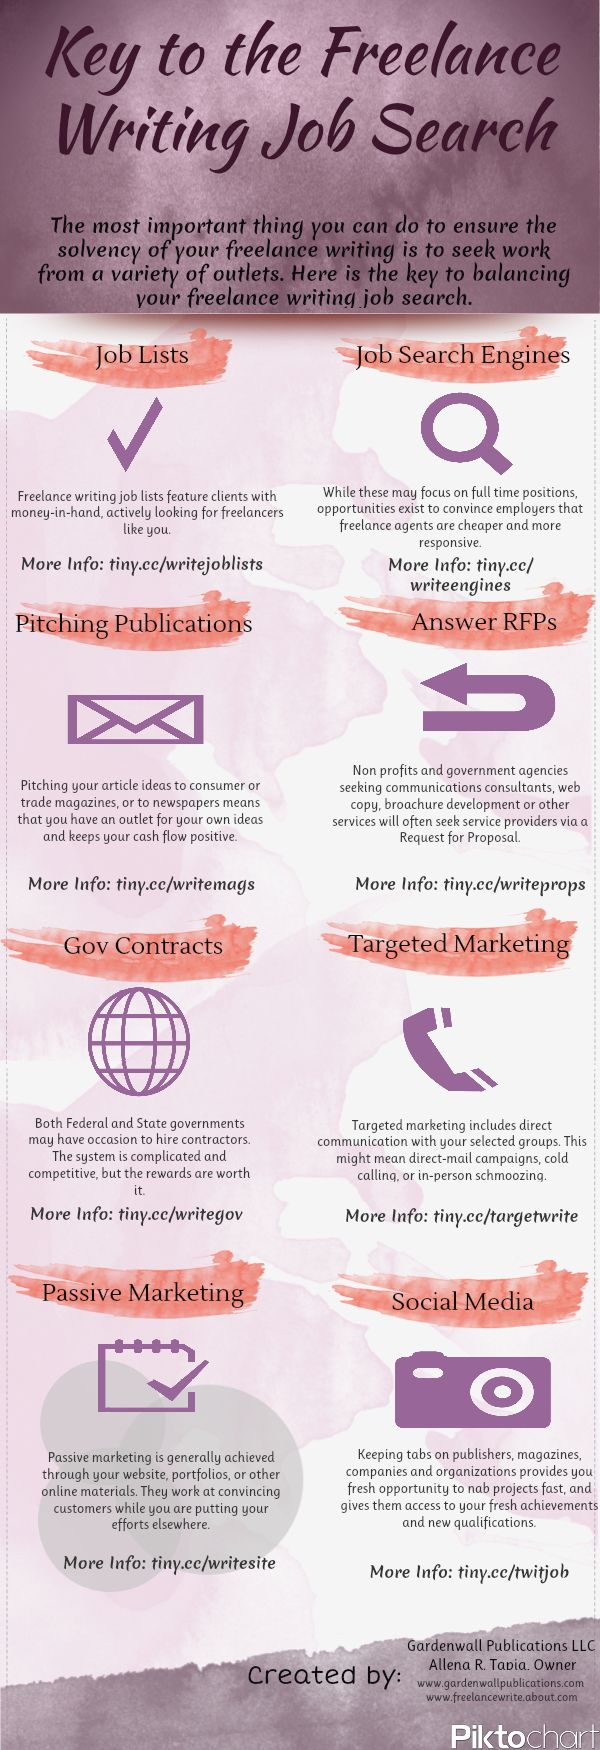 41 best writers infographics images on pinterest info graphics balanced approach to freelance writing jobs original of allenagardenwall publications fandeluxe Choice Image